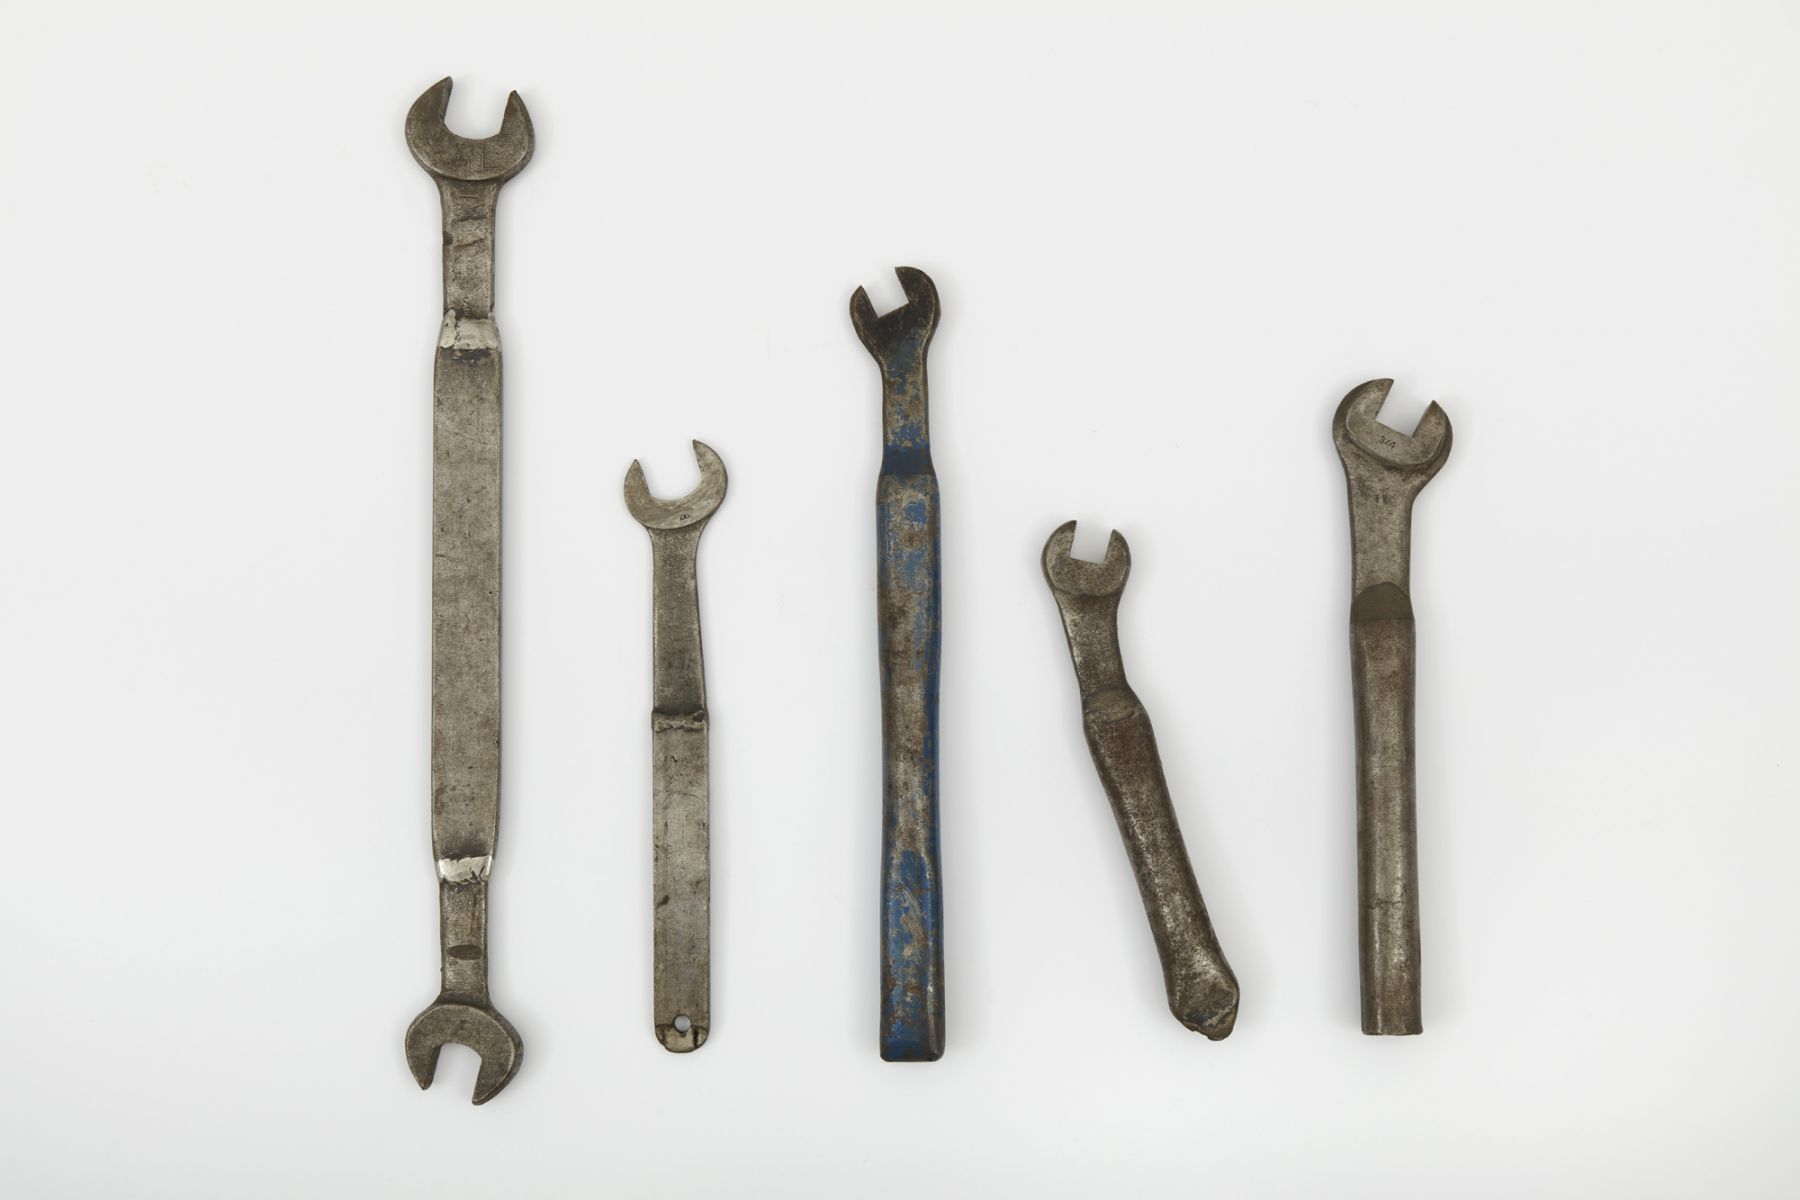 Jorge Pardo, Adjusted Wrenches